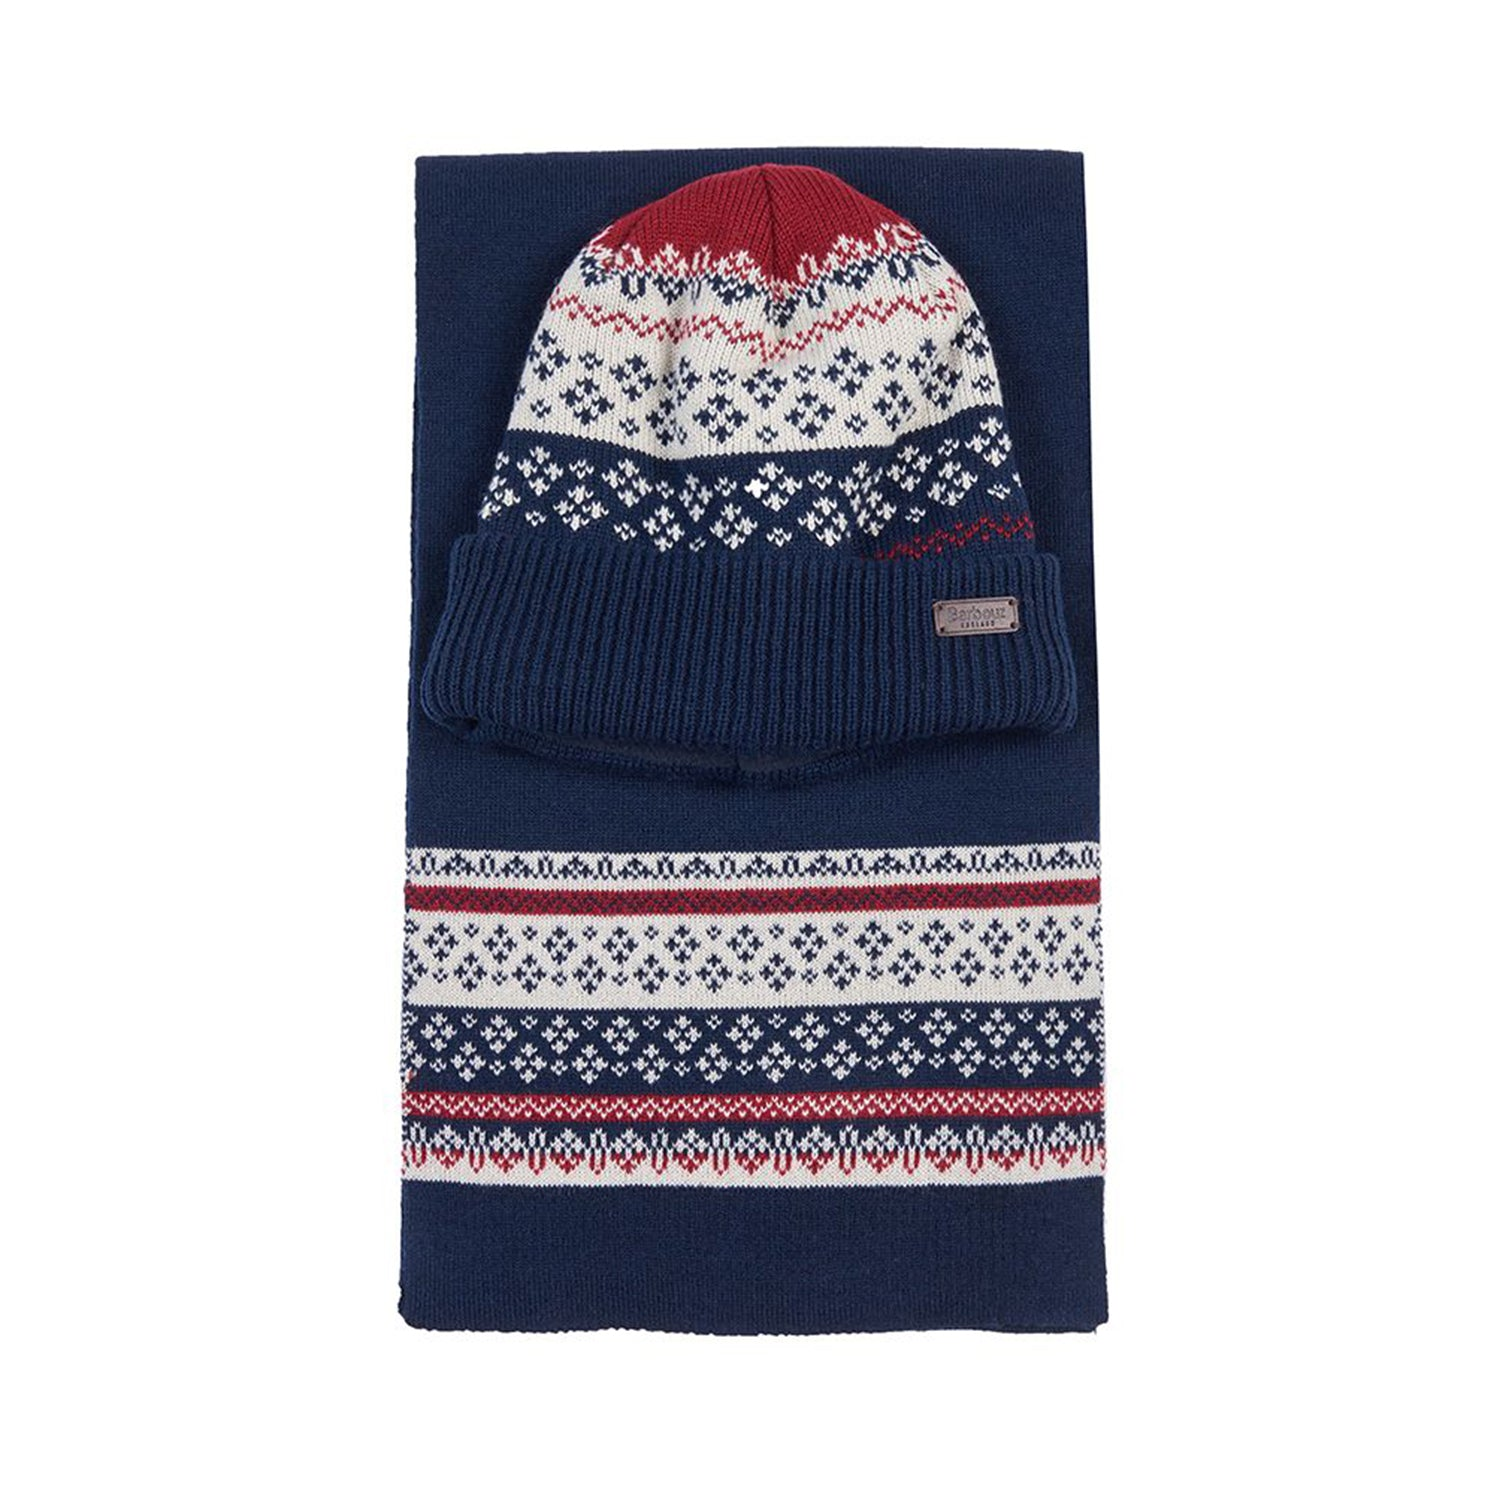 Barbour Fairisle Beanie & Scarf Gift Set Navy Red Ecru